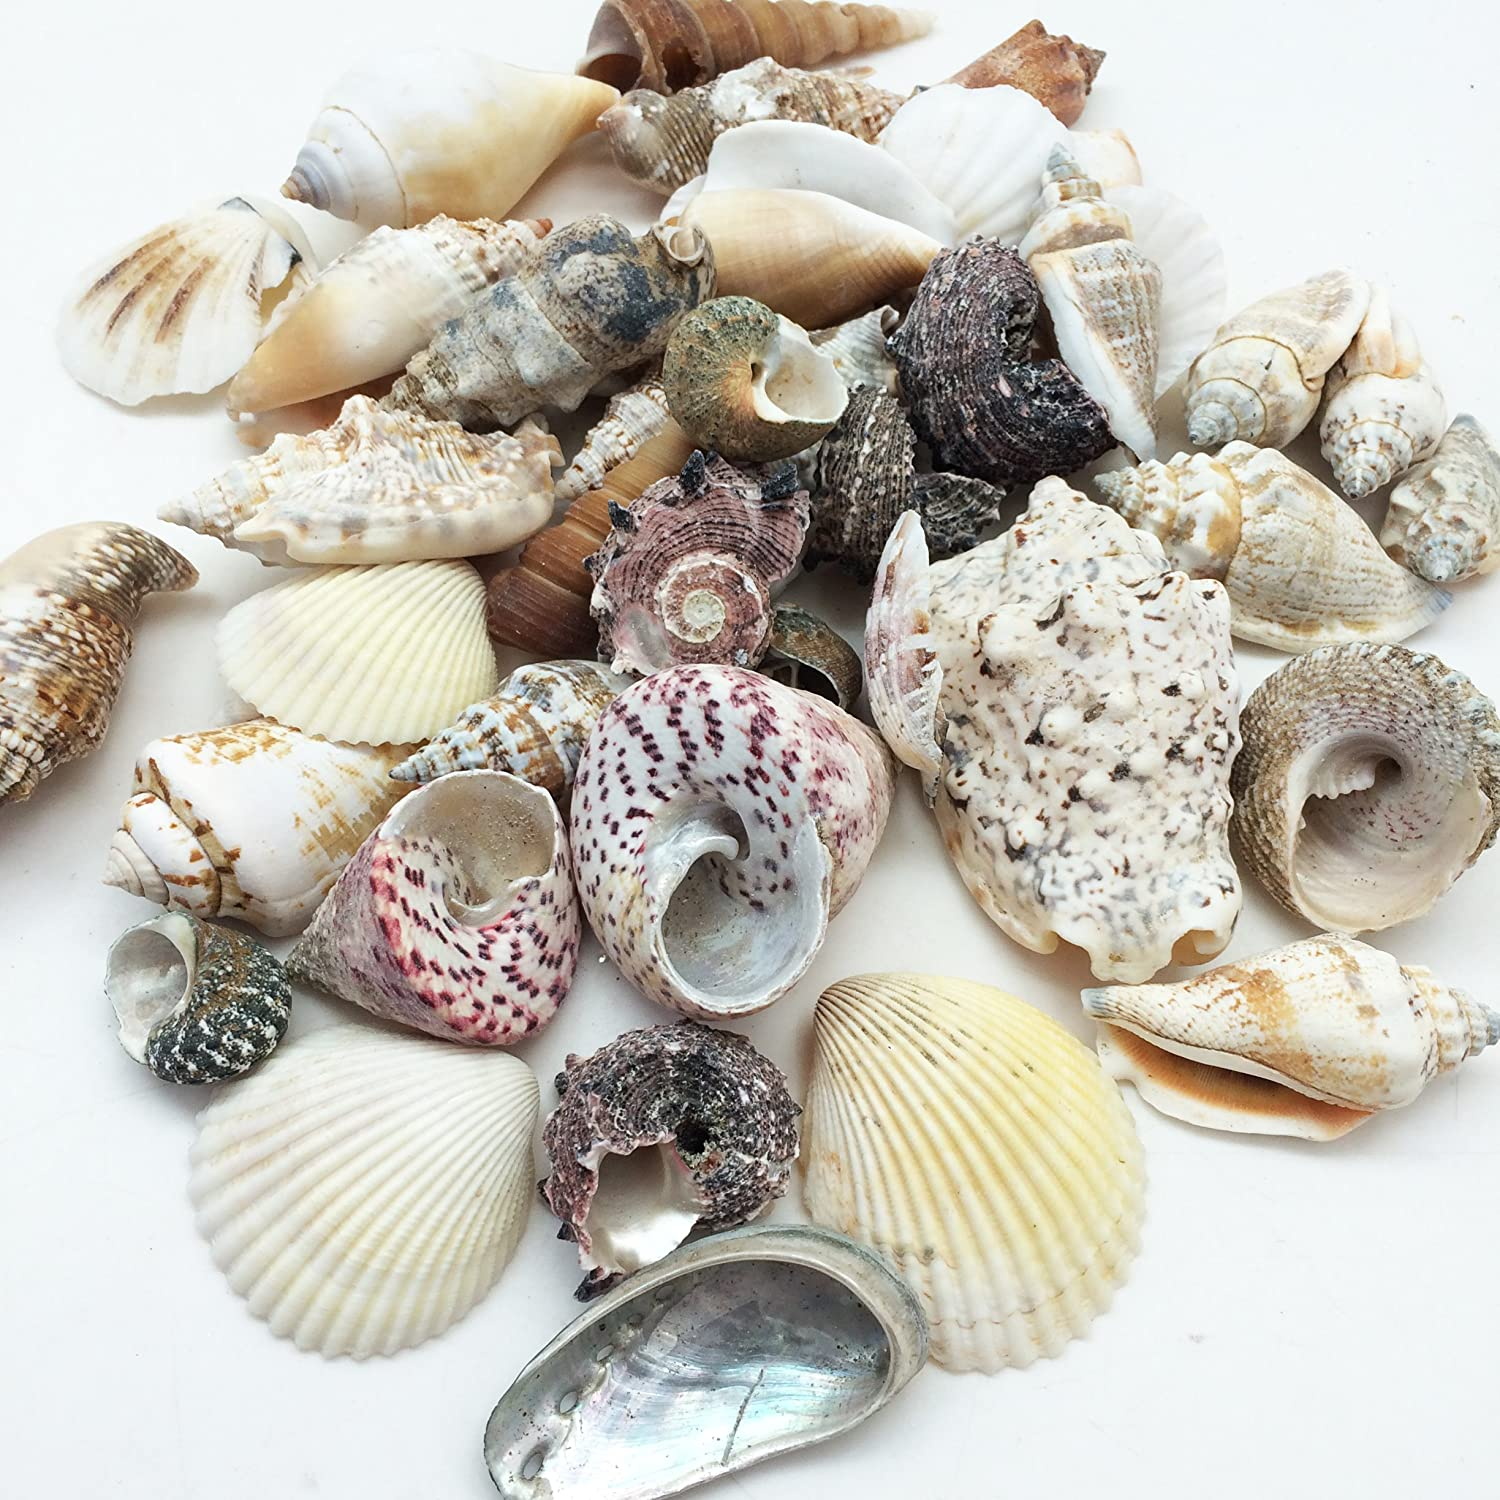 7 . Large Special Philipine Mix Shells, 1\ PEPPERLONELY Large Special Philipine Mix Sea Shells, 16 OZ Apprx. 40+ PC Shells, 1 Inch  3 Inch